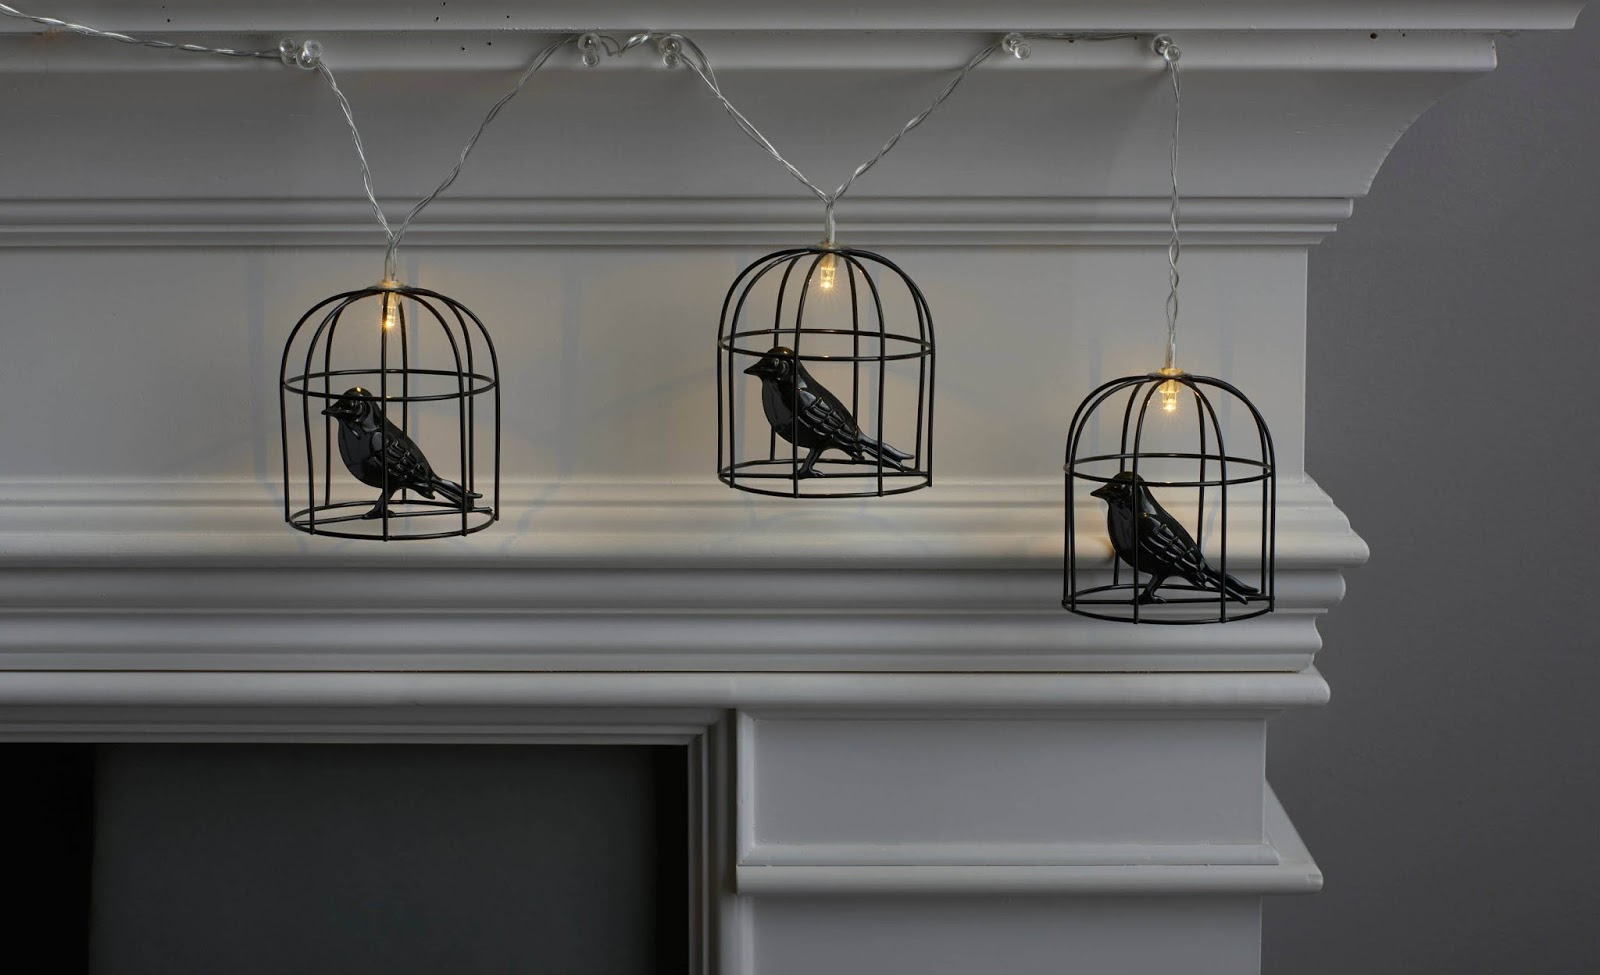 addicted to halloween the cheap version of pottery barn\u0027s crow lightsmaybe it\u0027s a sparrow i\u0027m thinking of?